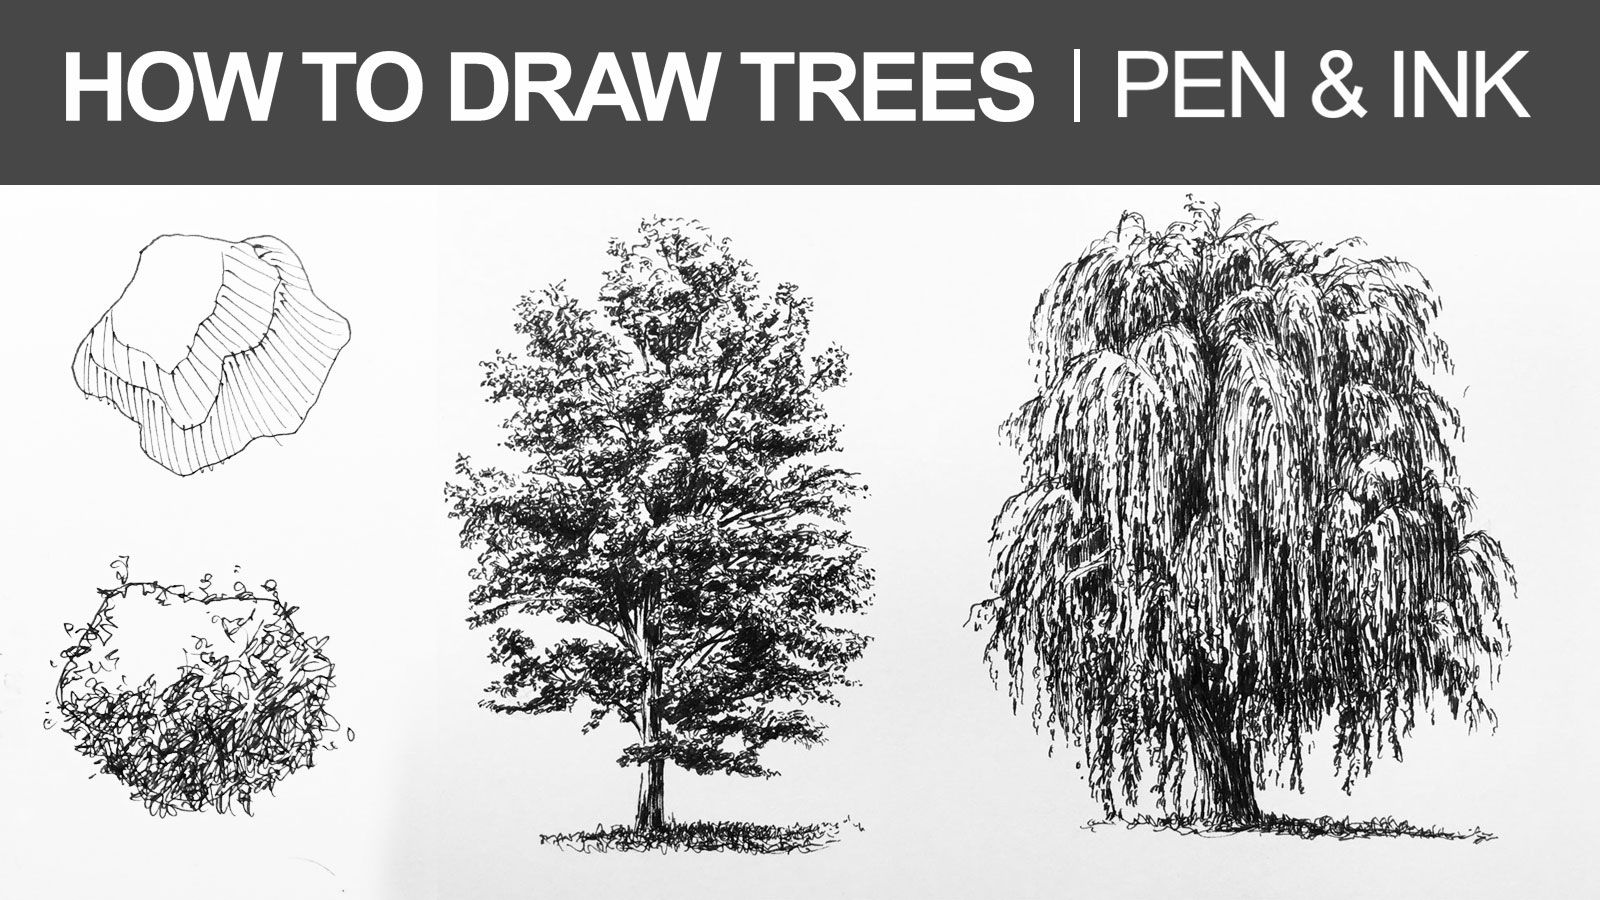 Learn How To Draw Trees With Pen And Ink In This Lesson